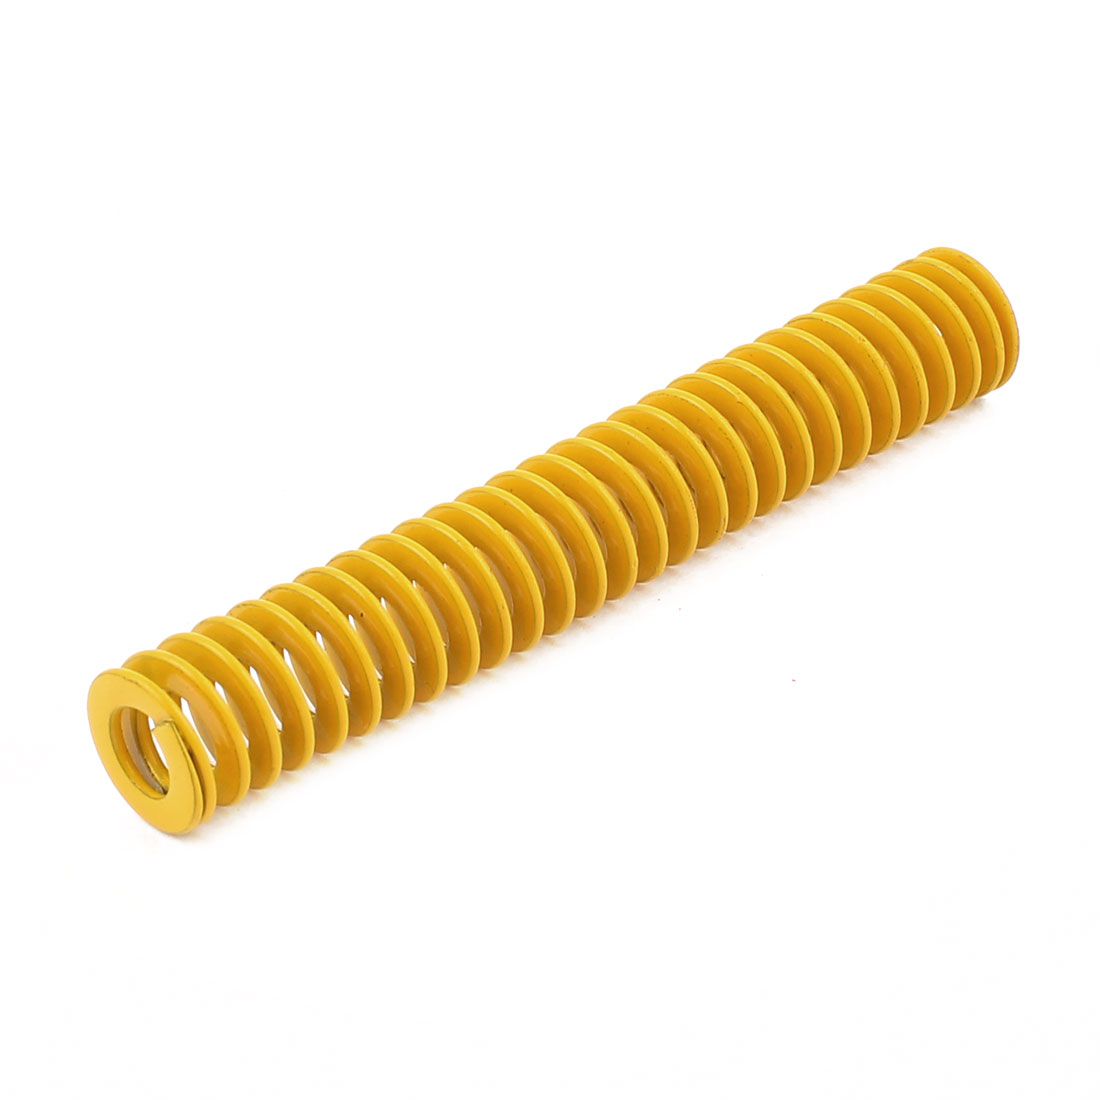 Yellow Alloy Steel Light Load Press Flat Coil Compression Die Spring 12mm x 6mm x 75mm